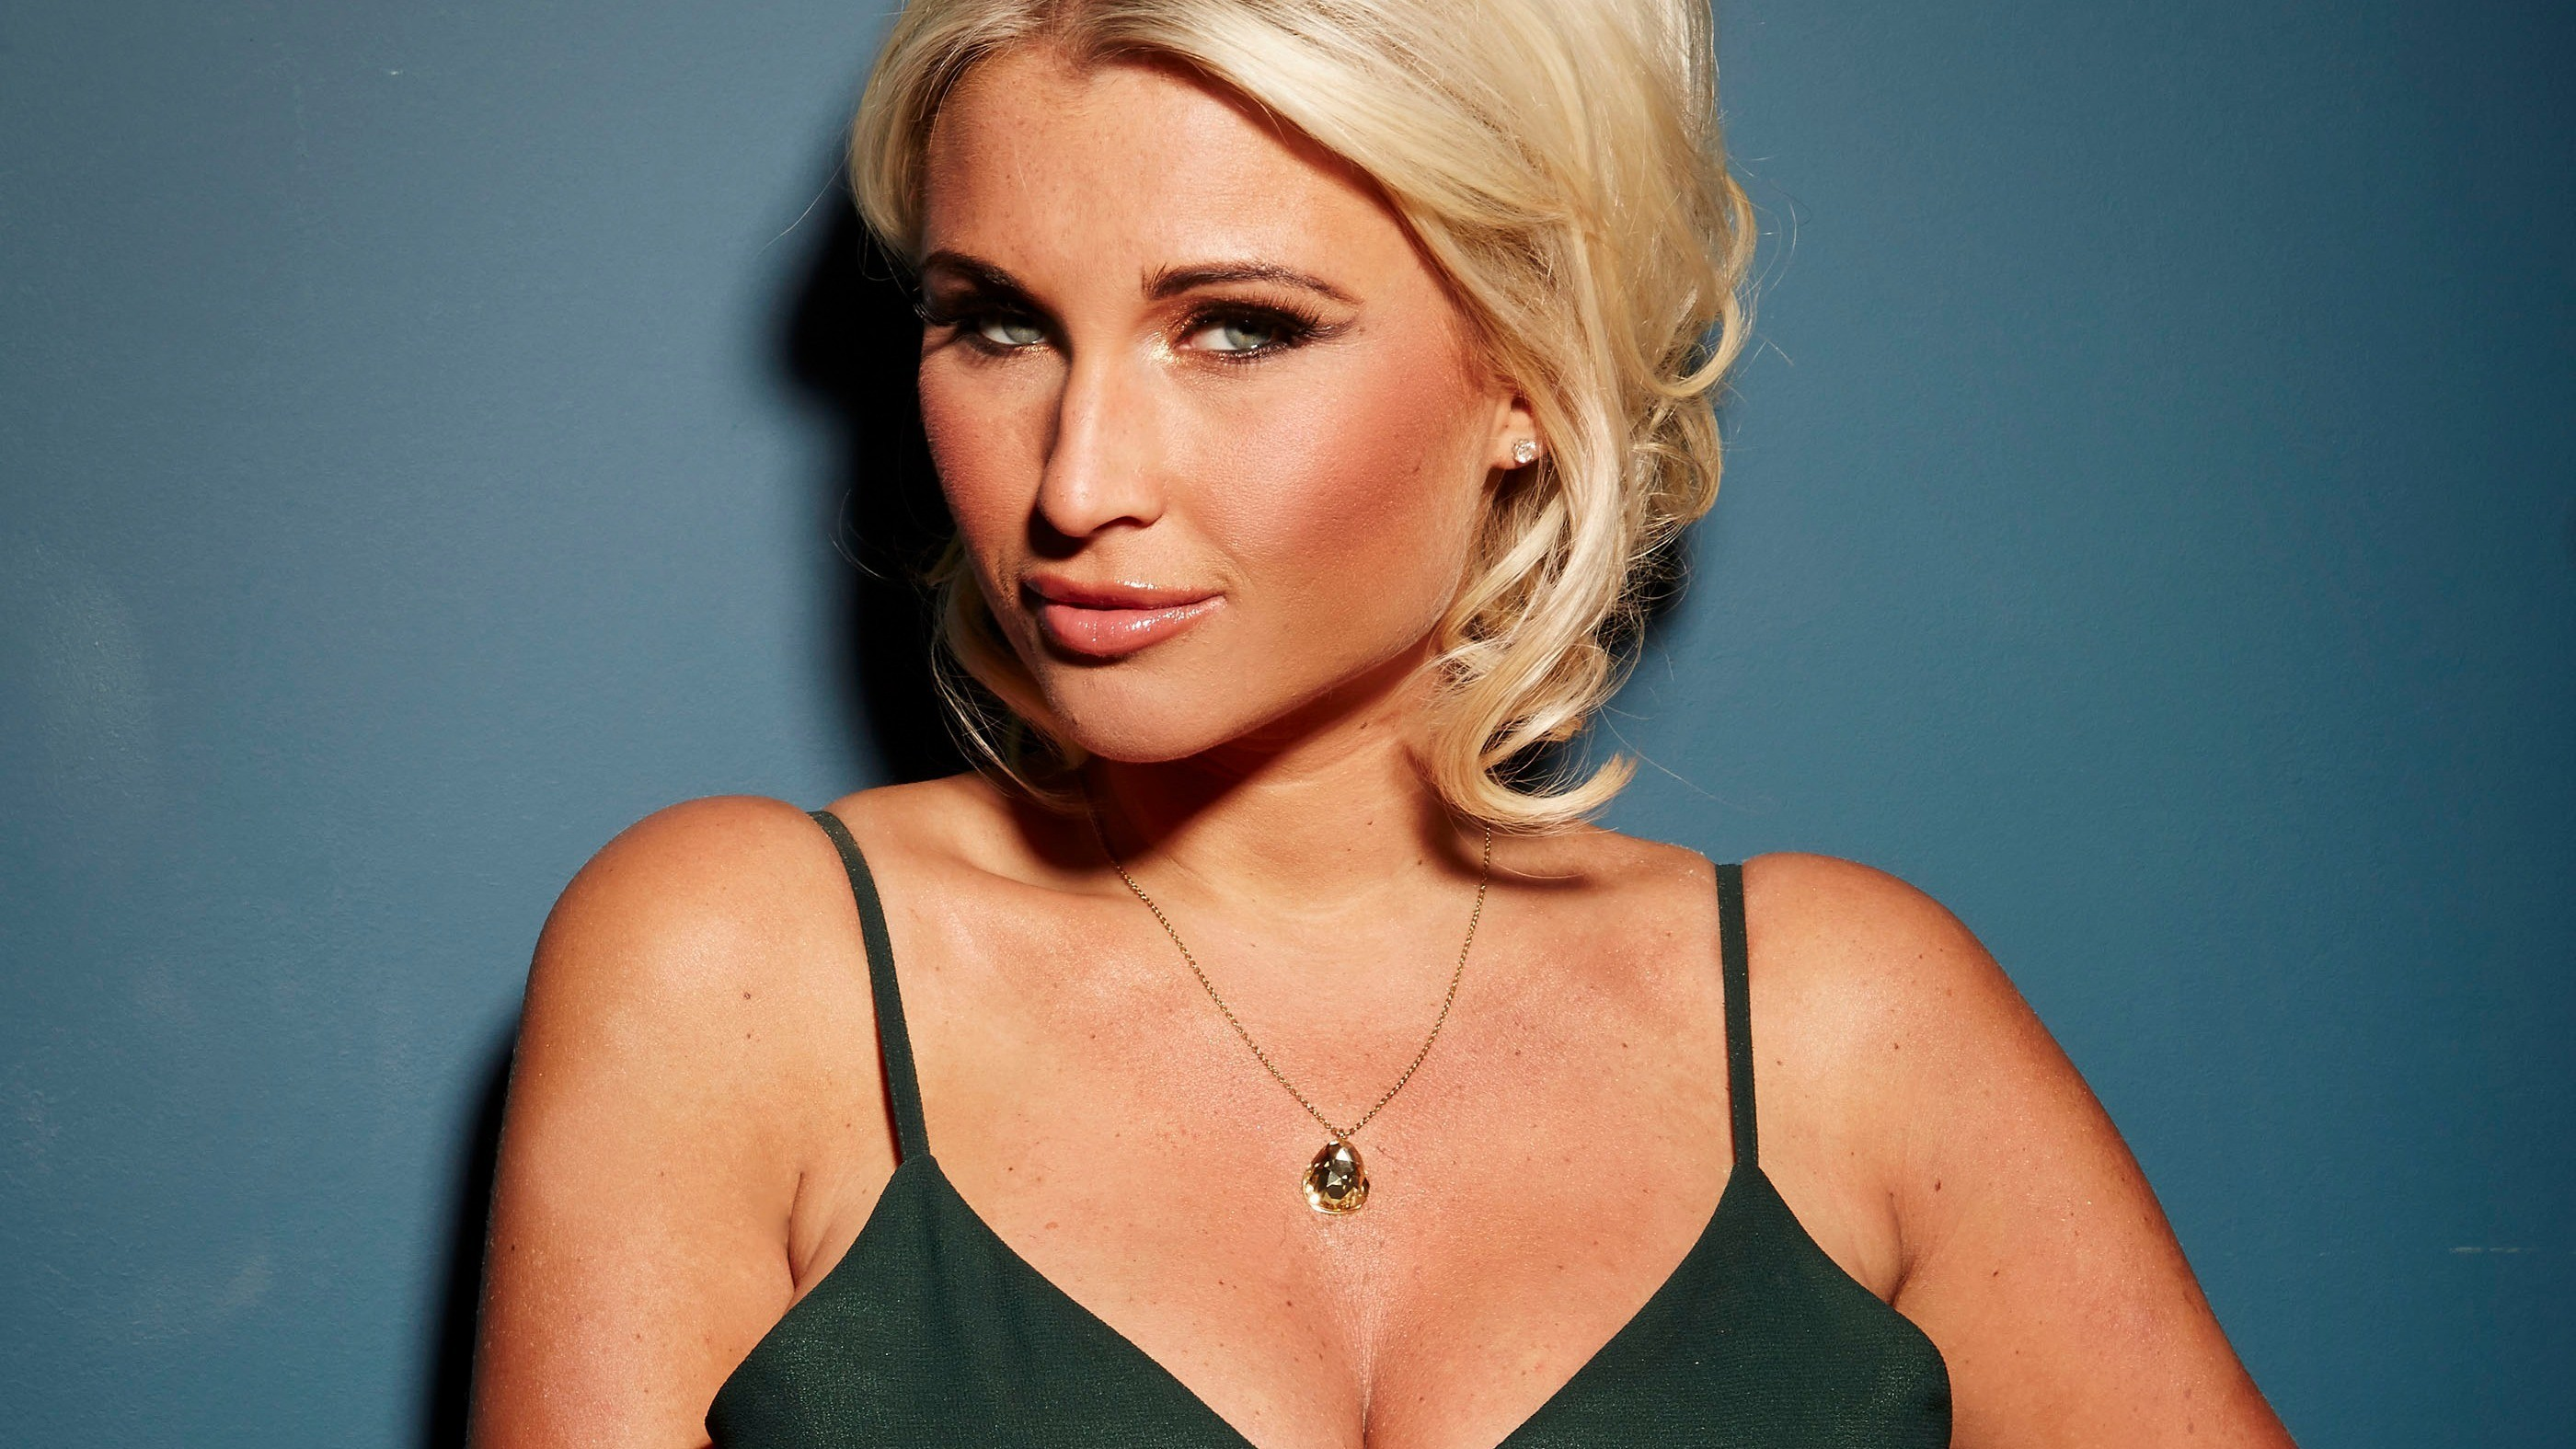 Billie Faiers Hd Desktop